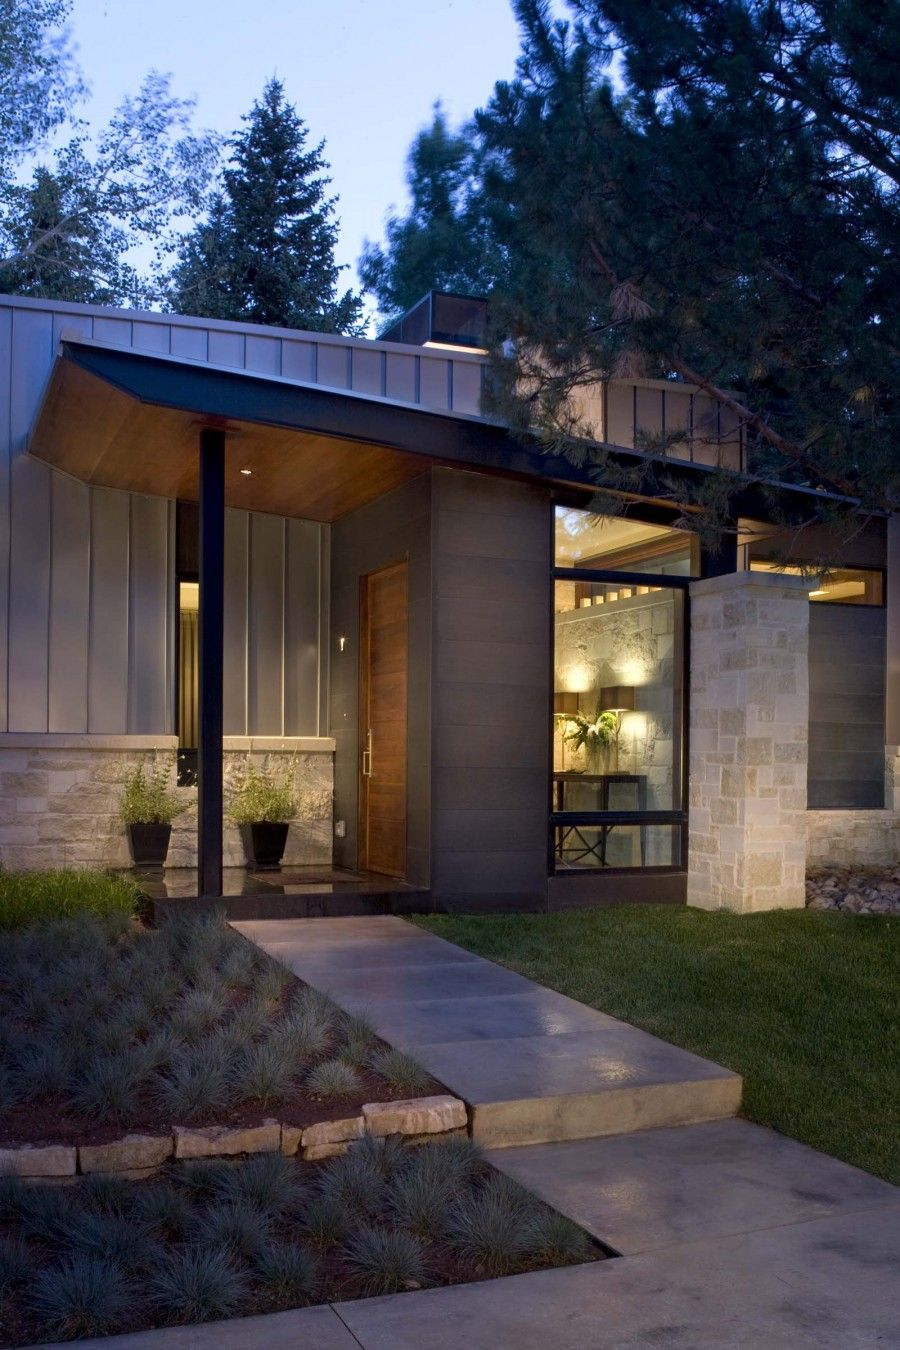 Modern Exterior Home Design Ideas Remodels Photos: Contemporary Ranch House Remodel Front Entrance Ideas With Walkway Small Yard Green Grass